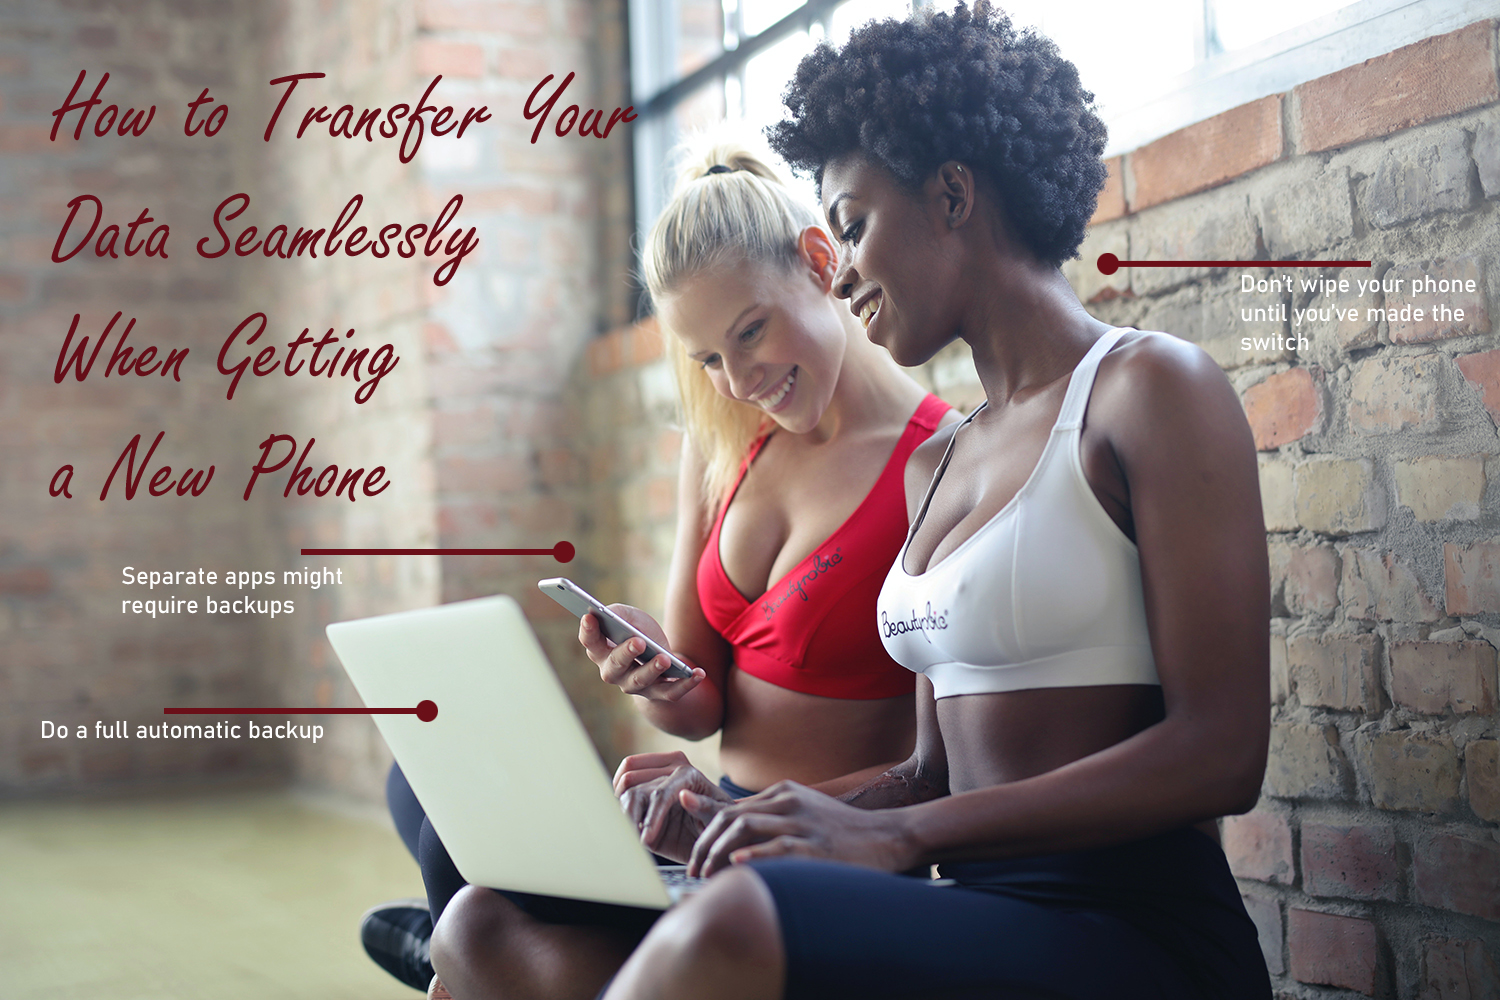 How to Transfer Your Data Seamlessly When Getting a New Phone